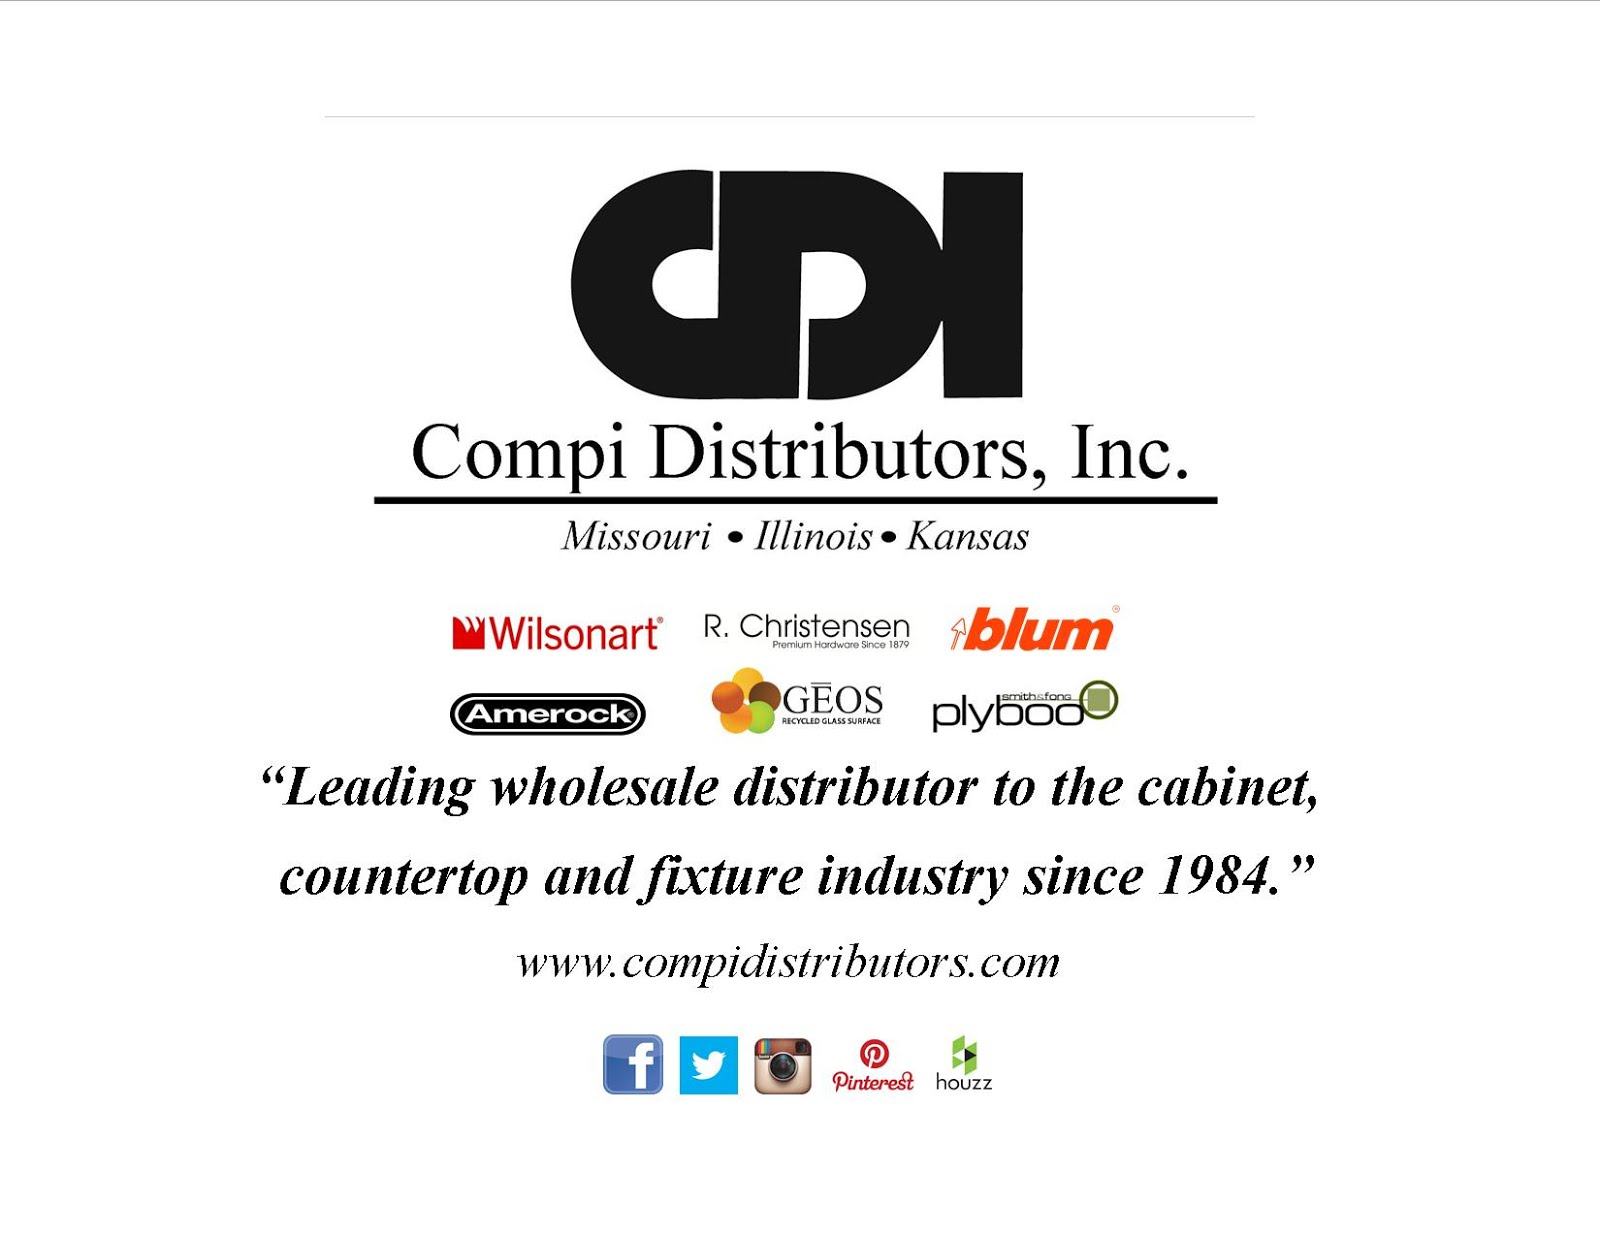 Thank you to our Star Sponsor Compi Distributors